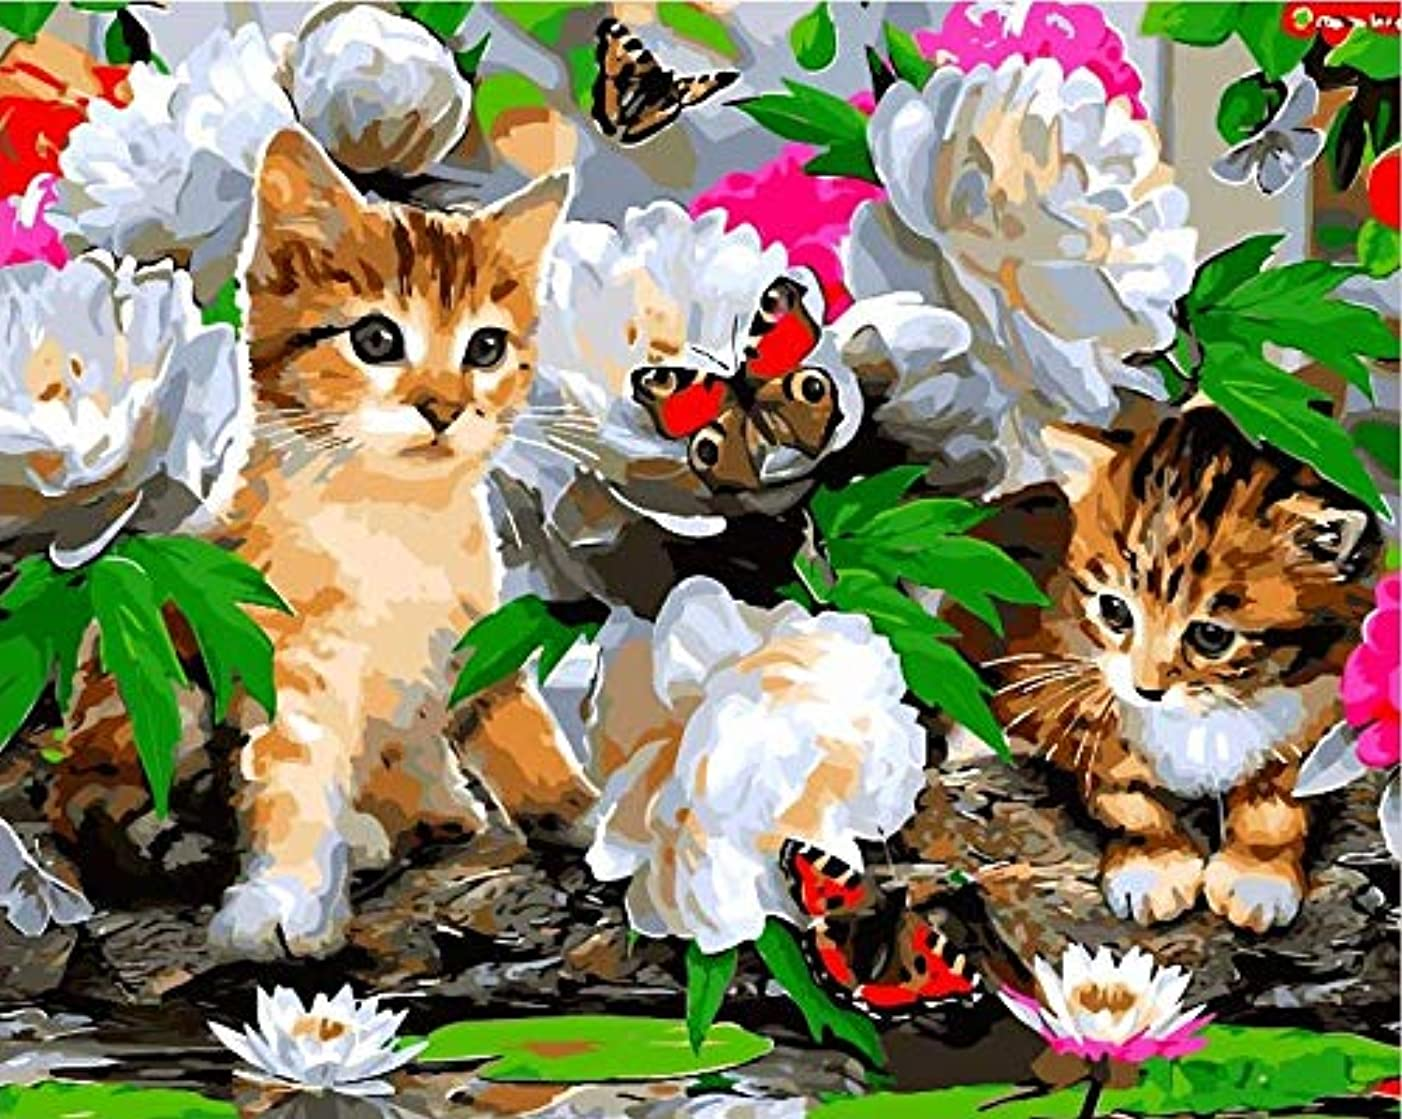 Easy ArtWorld's Painting by Number   Paint by Number Kits   Beautiful DIY Artwork Painting Kit   Painting with a Twist   Painting for All Ages (Nature's Cats, Wooden Frame)